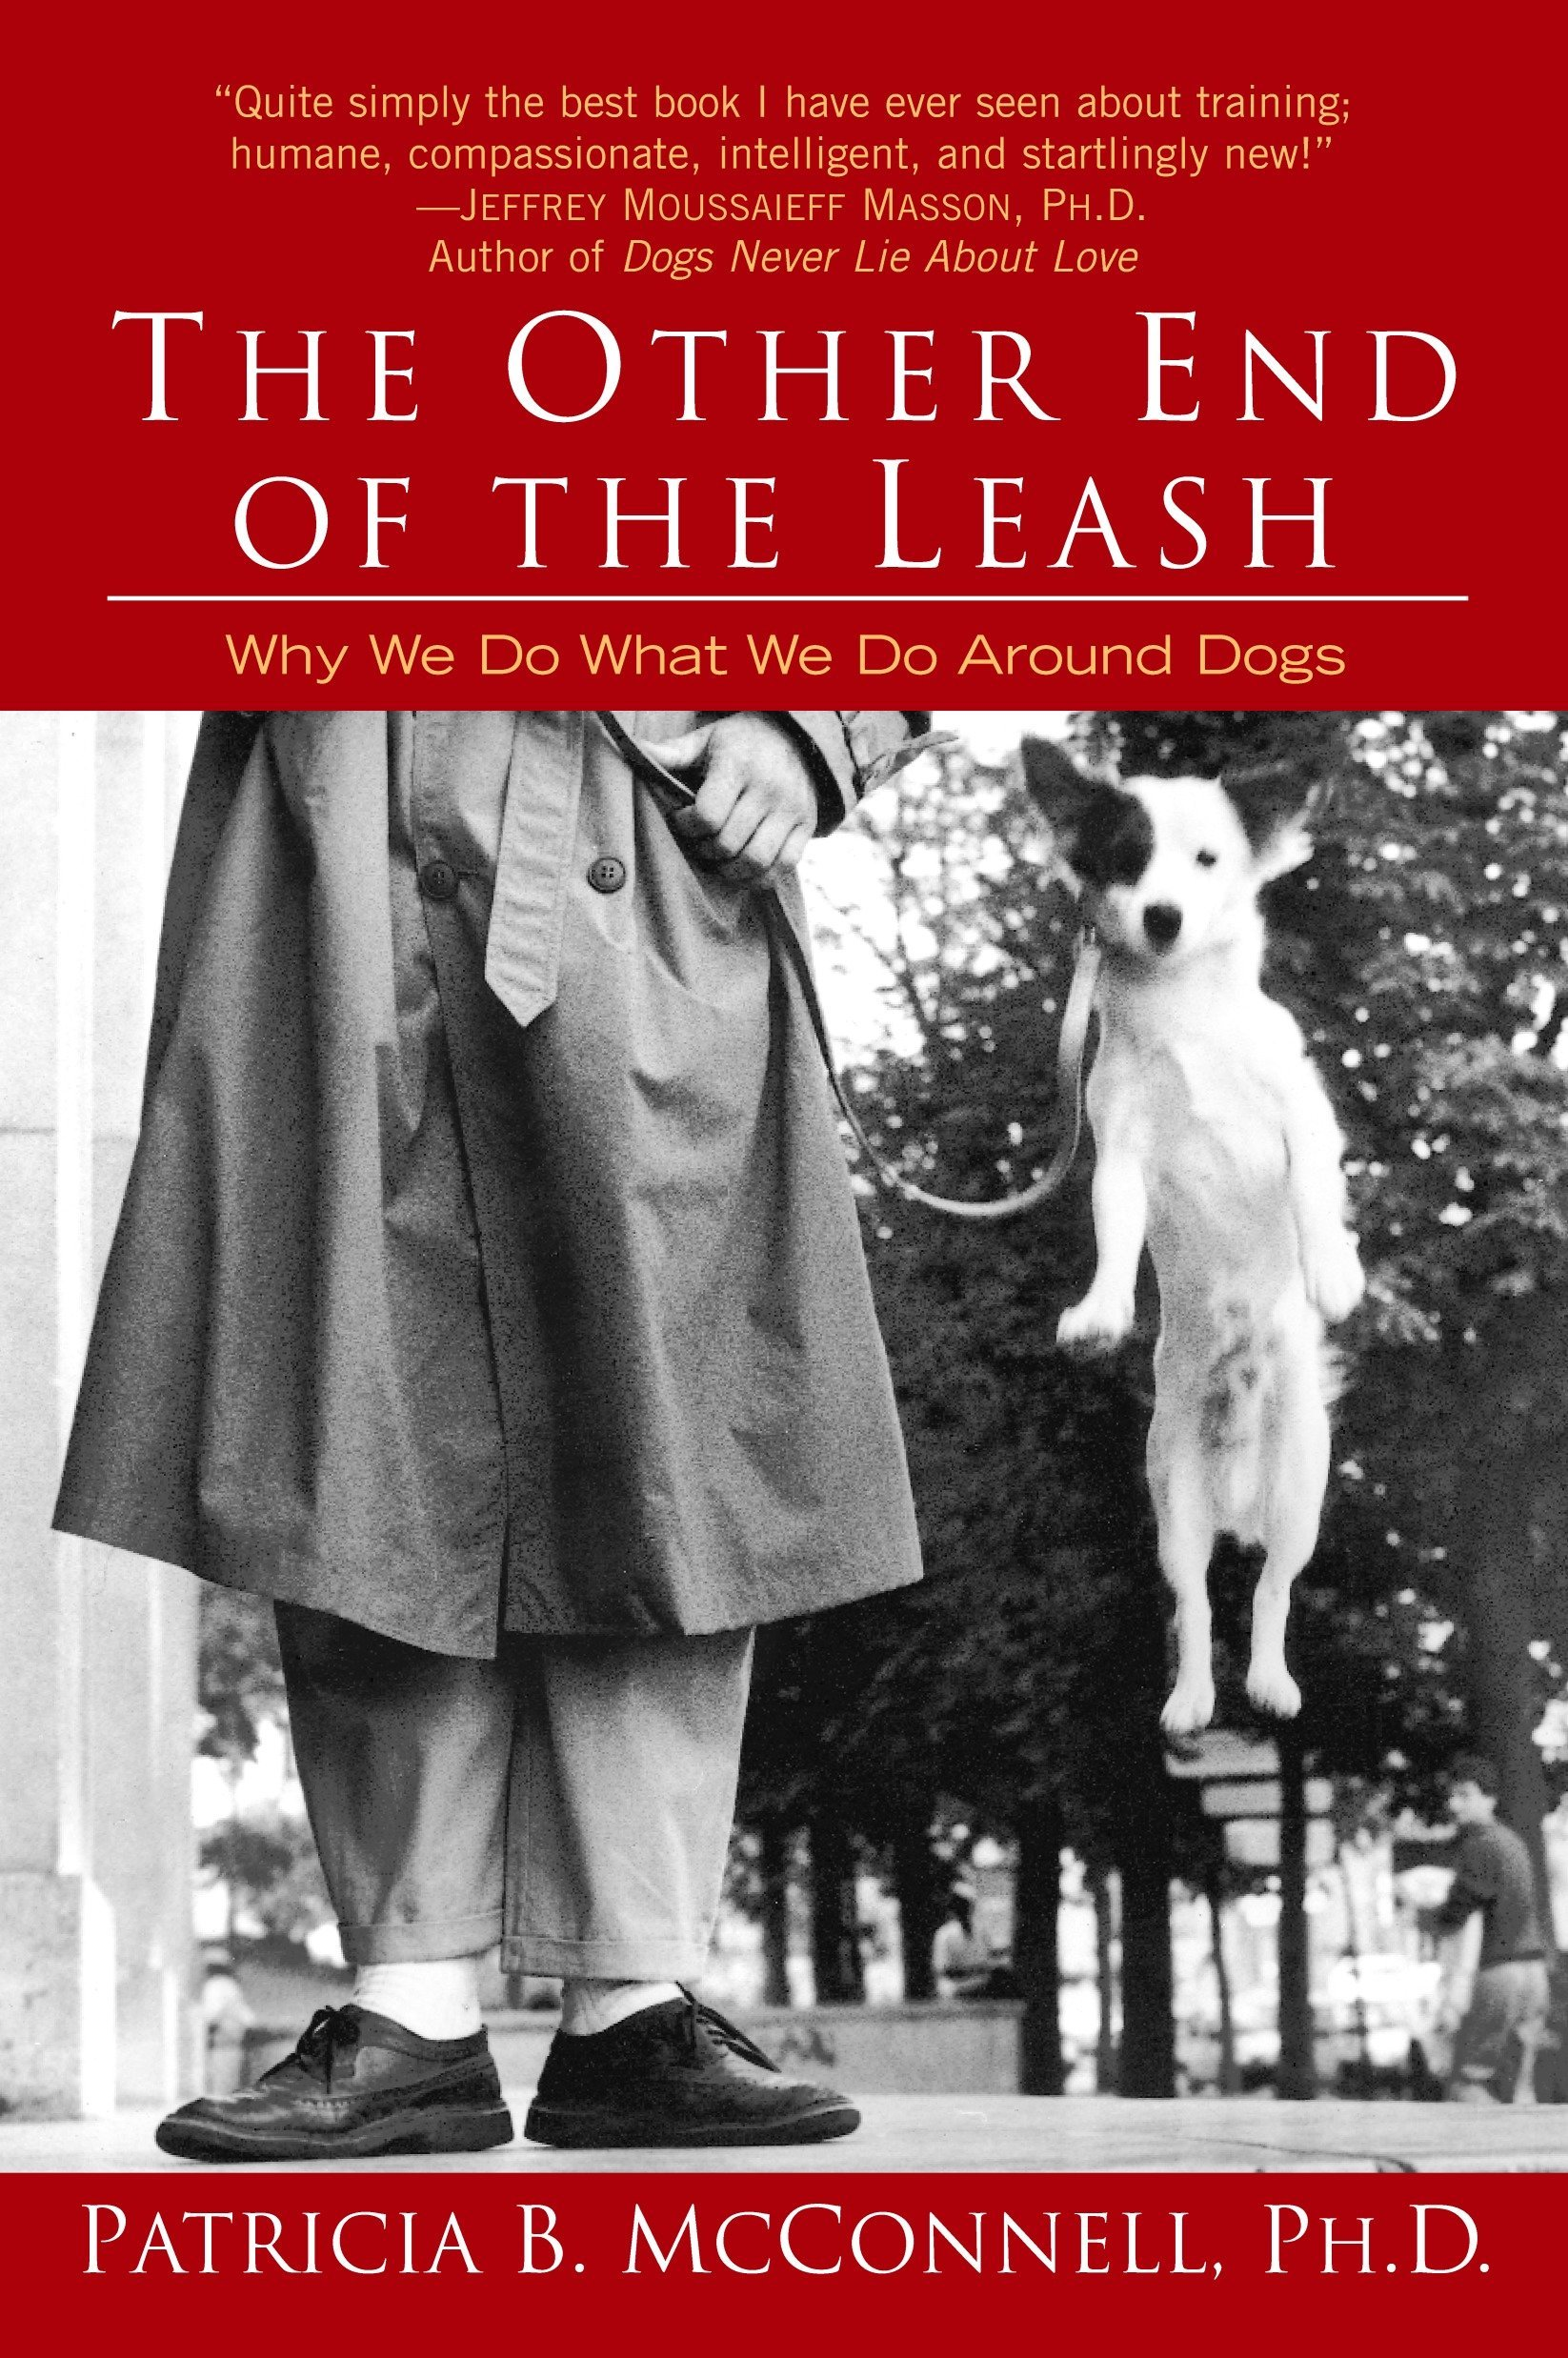 The Other End of the Leash: Why We Do What We Do Around Dogs: Patricia B.  McConnell: 8601419962846: Amazon.com: Books